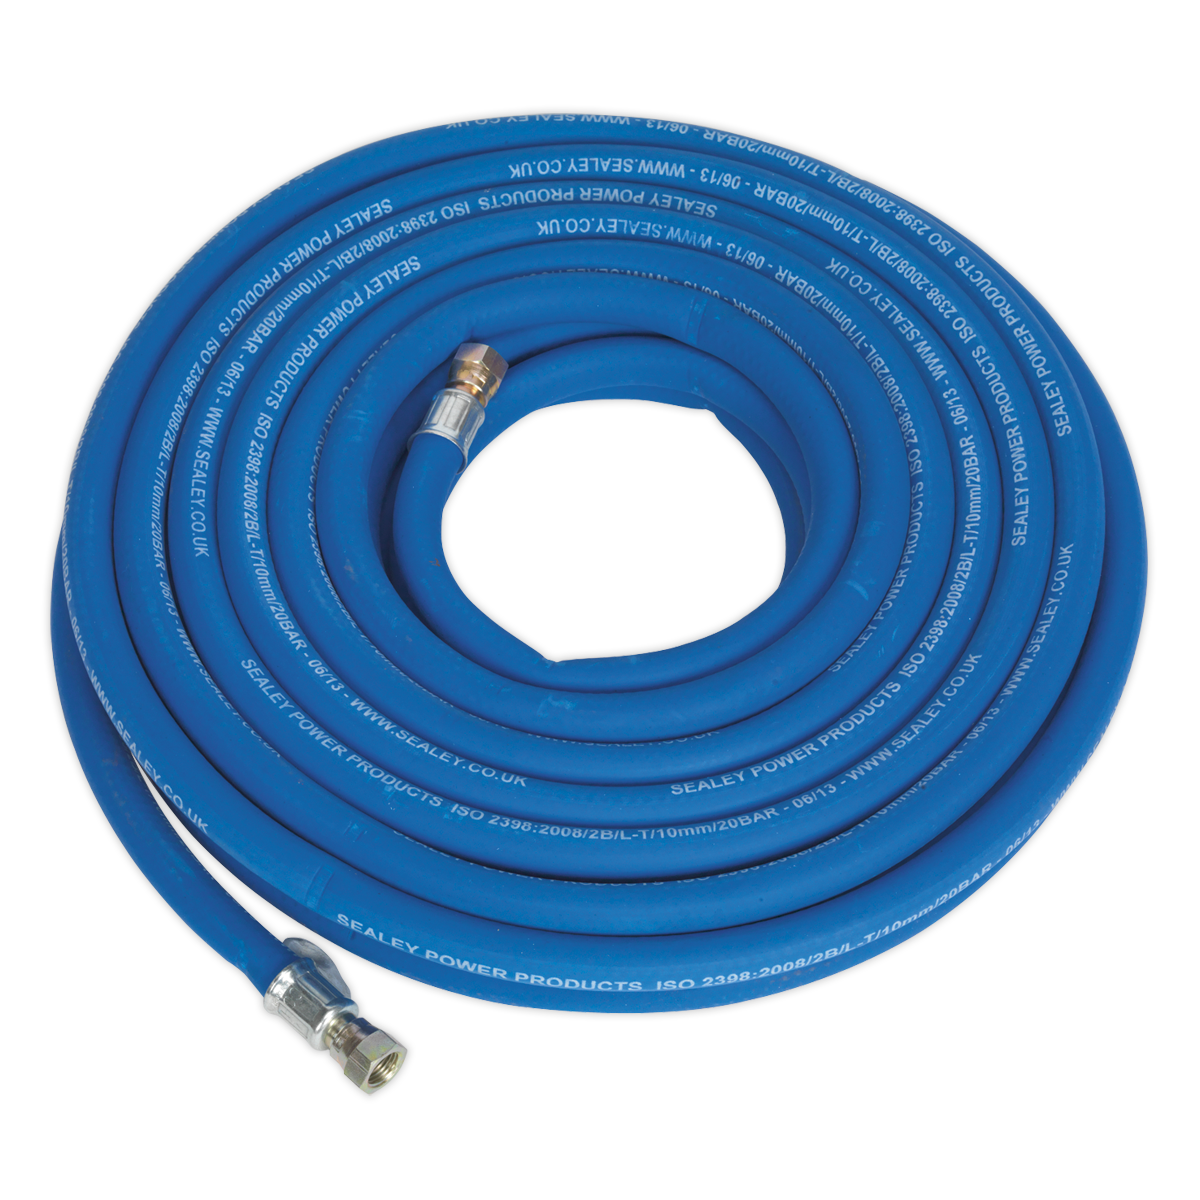 Air Hose 15m x Ø10mm with 1 4 BSP Unions Extra Heavy-Duty   SEALEY AH15R 38 by S